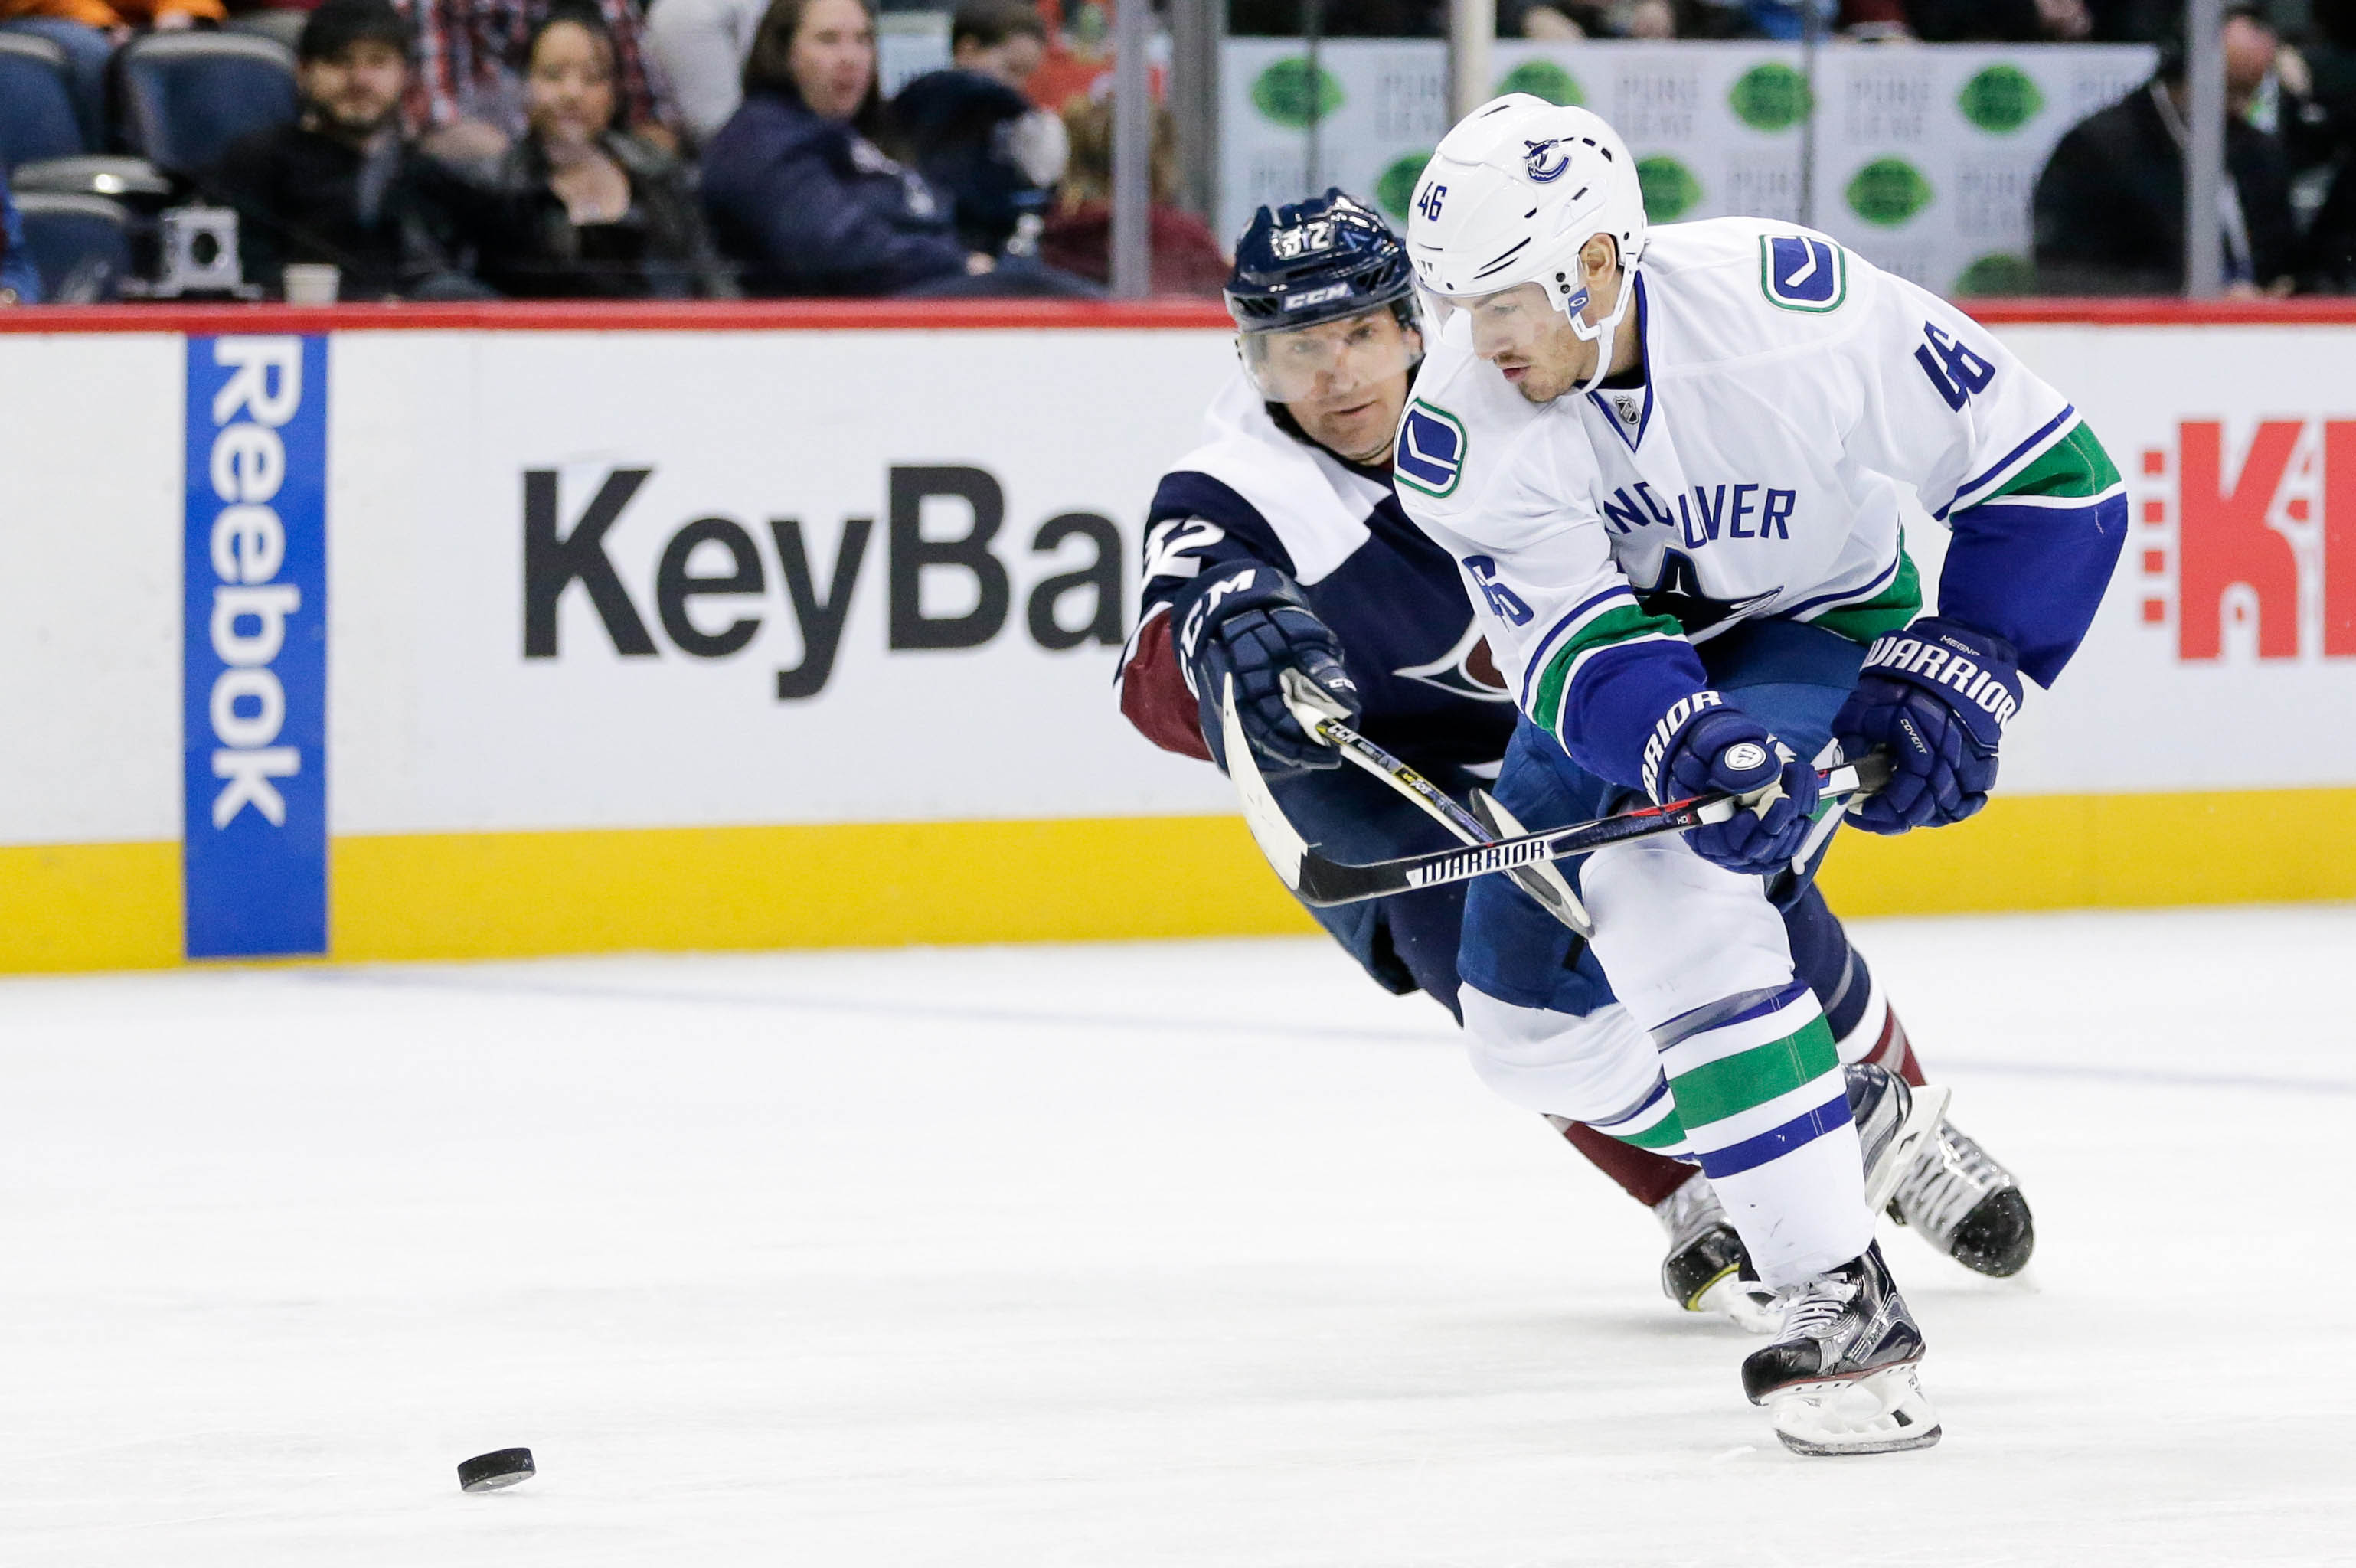 9708439-nhl-vancouver-canucks-at-colorado-avalanche